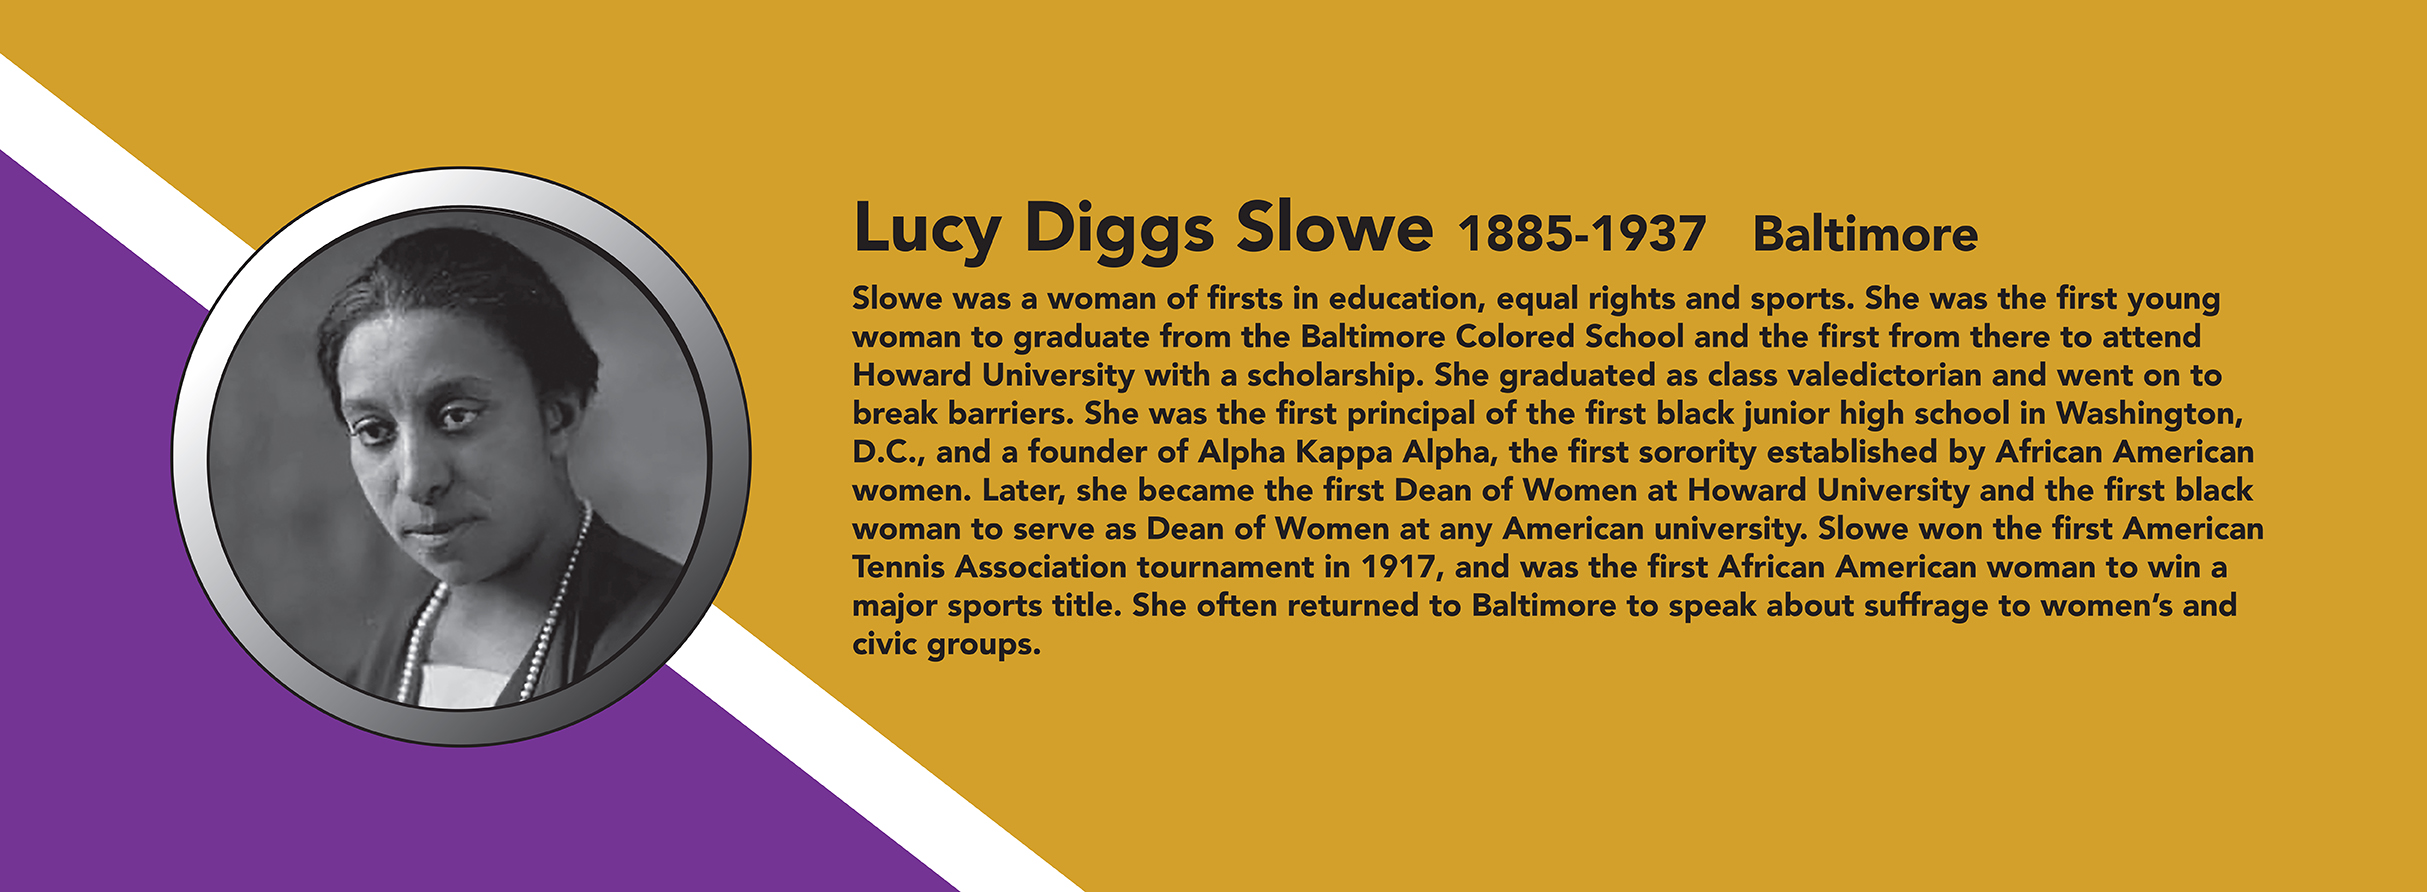 Lucy Diggs Slowe